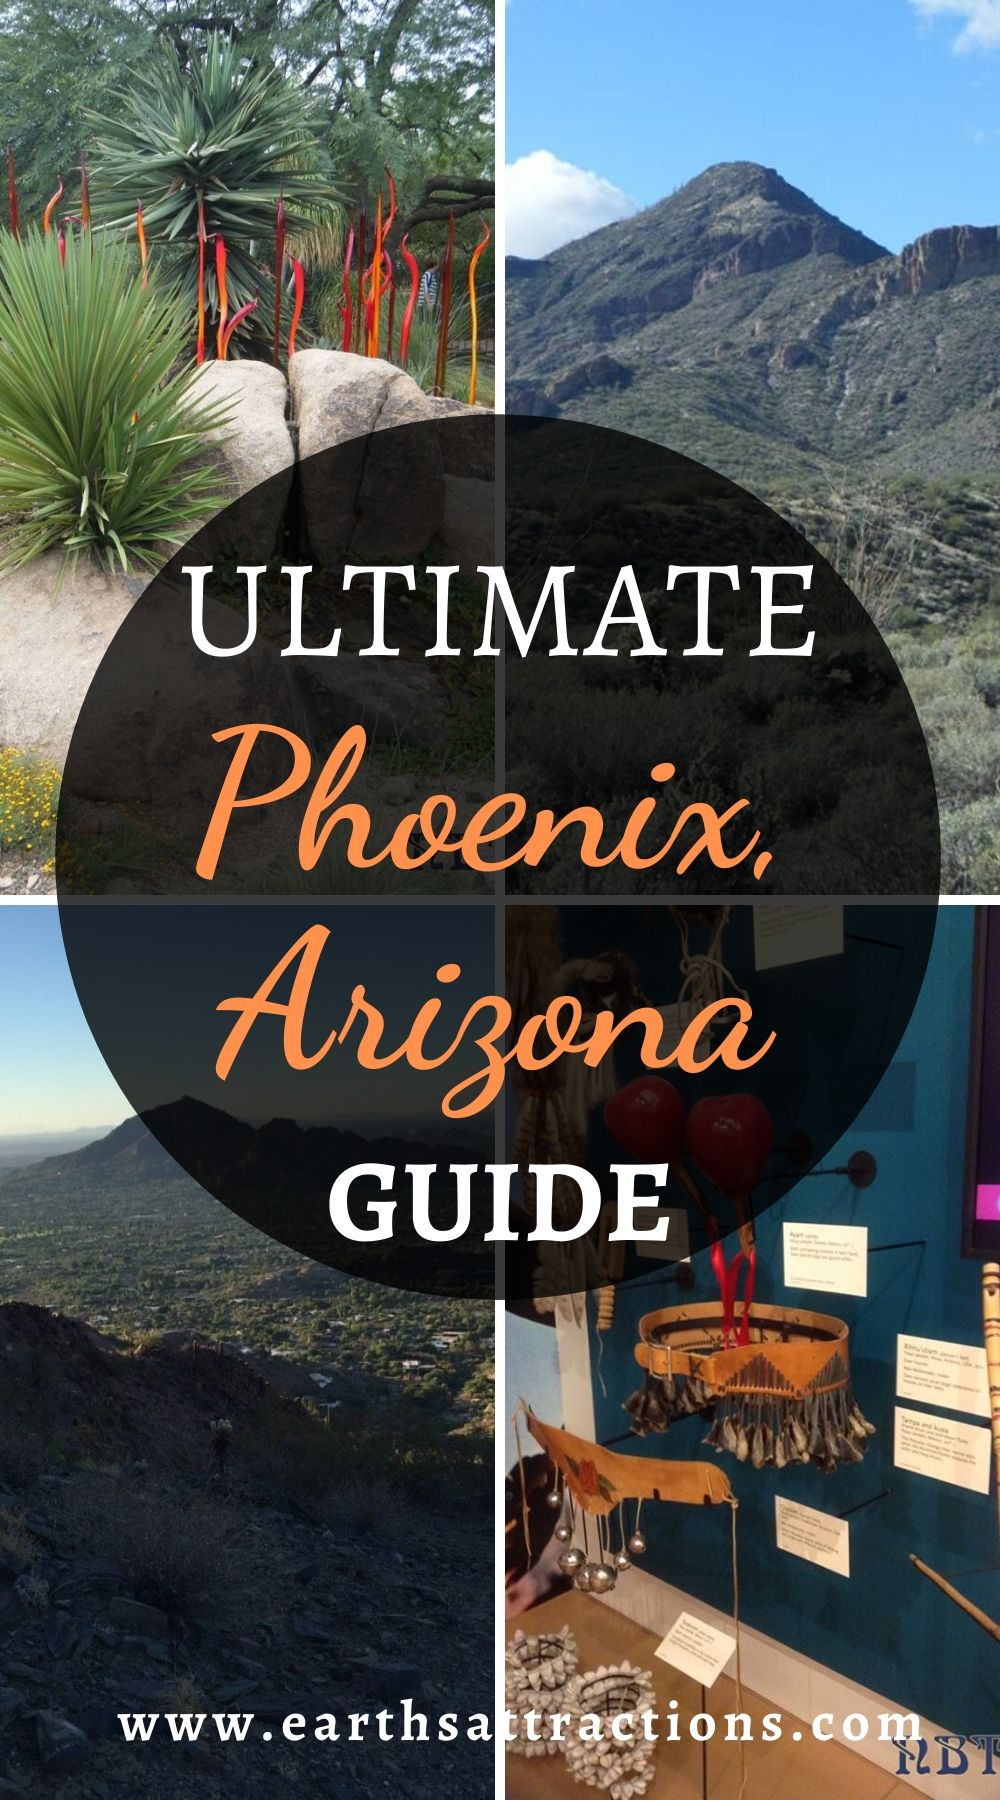 What to do in Phoenix, Arizona, USA. Use this Phoenix travel guide to discover the best things to do in Phoenix, interesting Phoenix off the beaten path things to do, Phoenix restaurants, and useful Phoenix travel tips. Create your Phoenix bucket list and, ultimately, your Phoenix itinerary with this article and have a great Phoenix trip! #phoenix #phoenixusa #usatravel #travelguide #earthsattractions #traveltips #travelguides #america